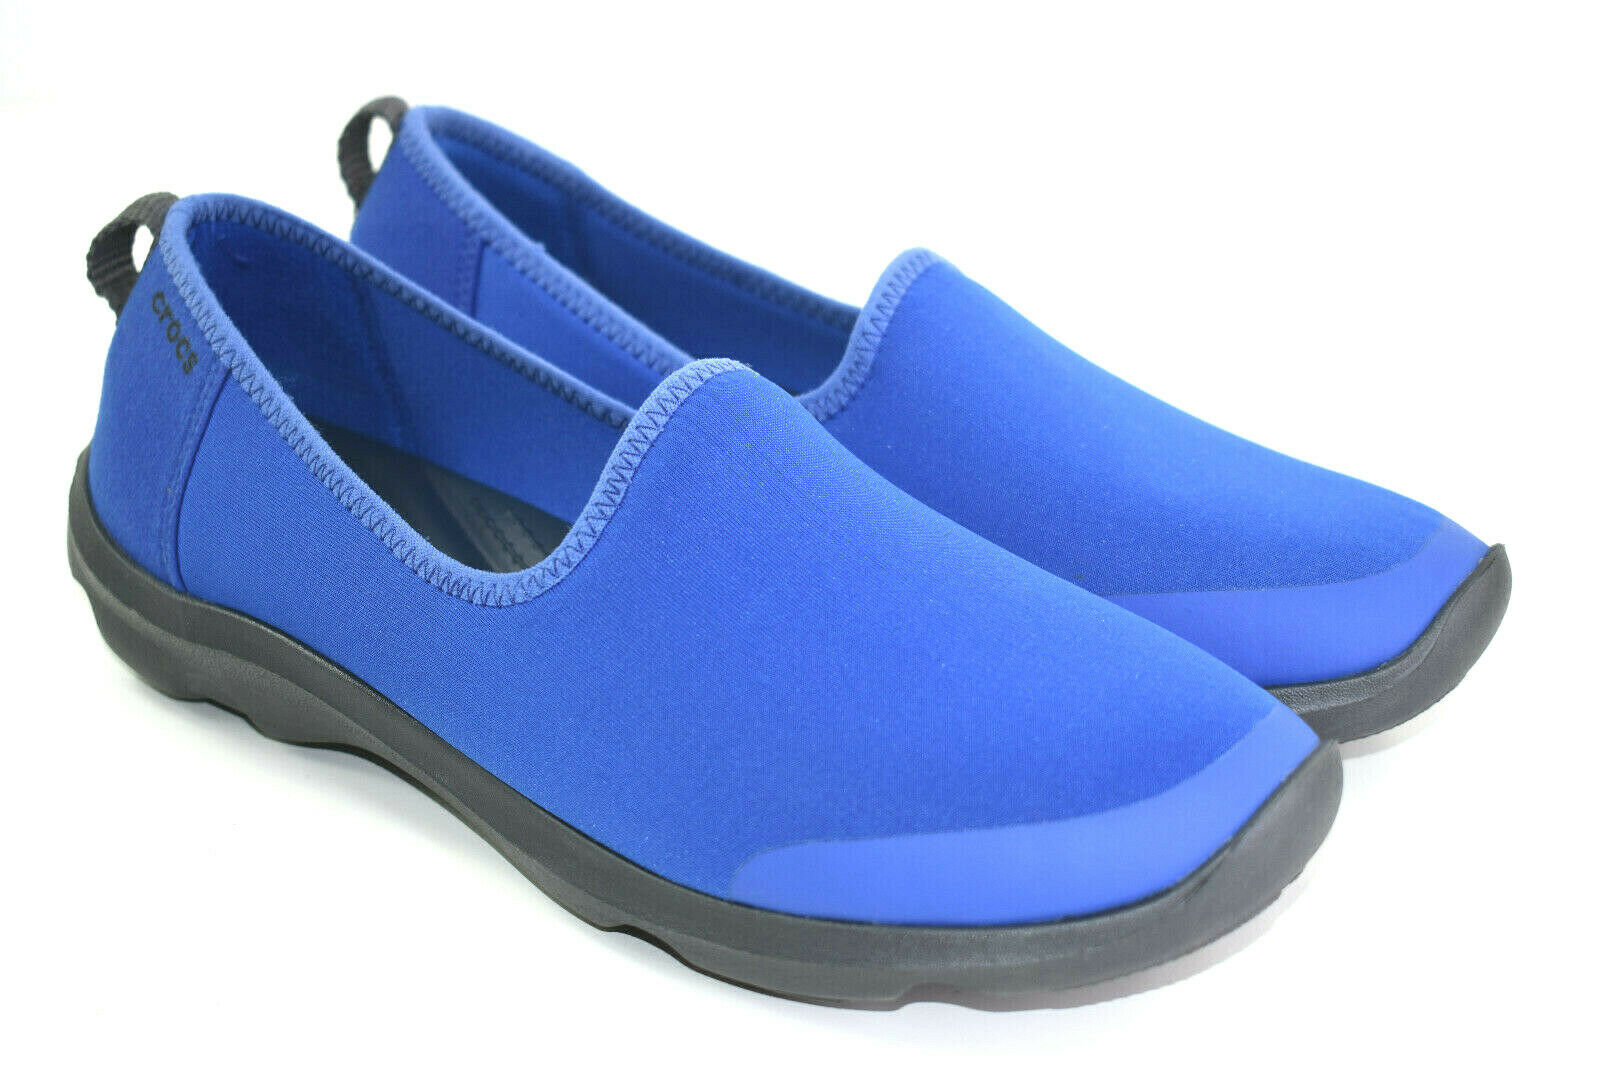 Crocs Womens Busy Day Stretch Skimmer Double Comfort shoes bluee Size 9